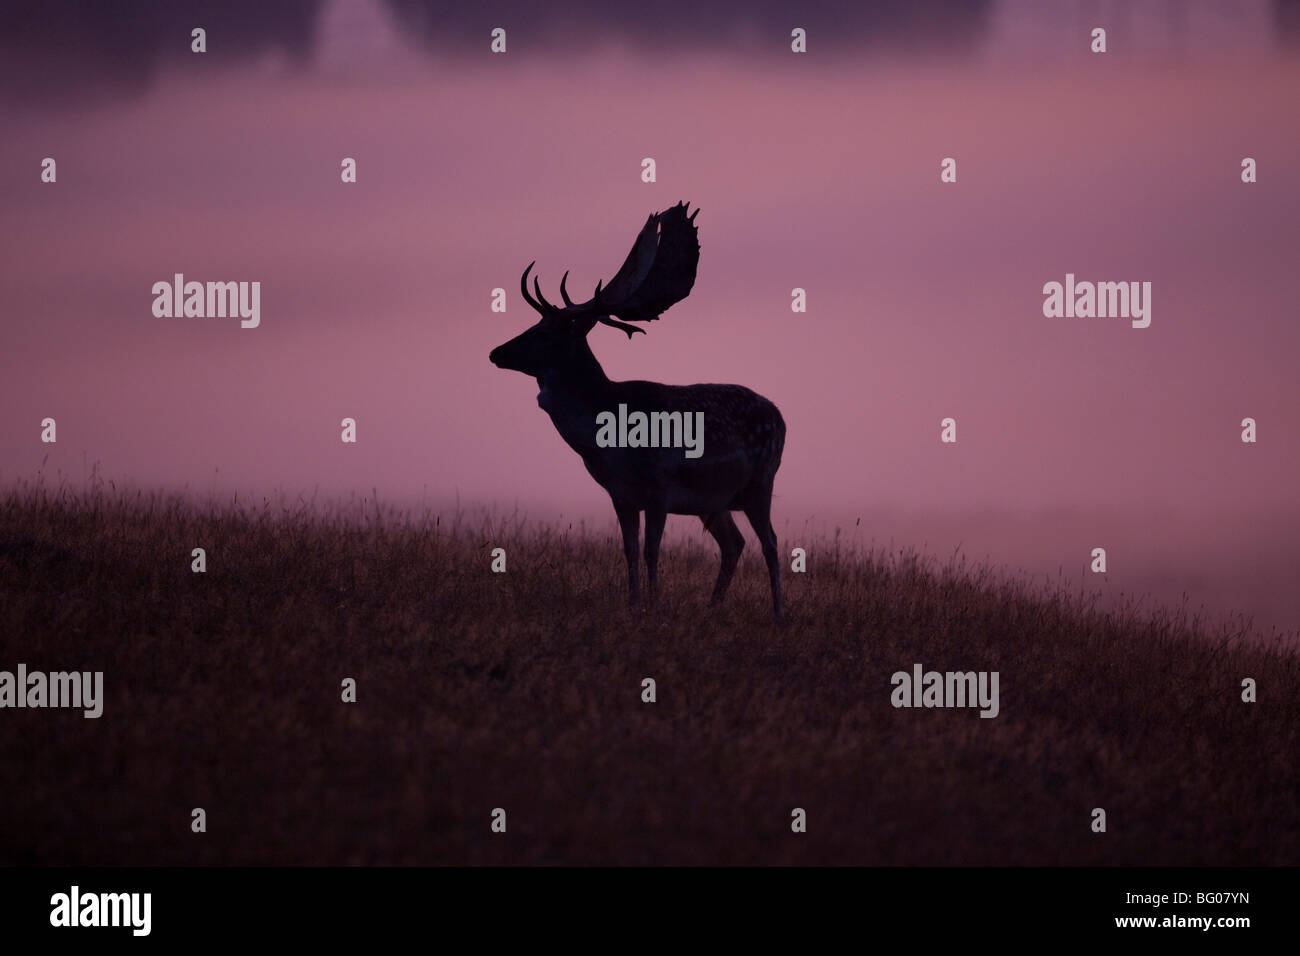 Le daim (Dama dama), stag contre un fond brumeux. Photo Stock